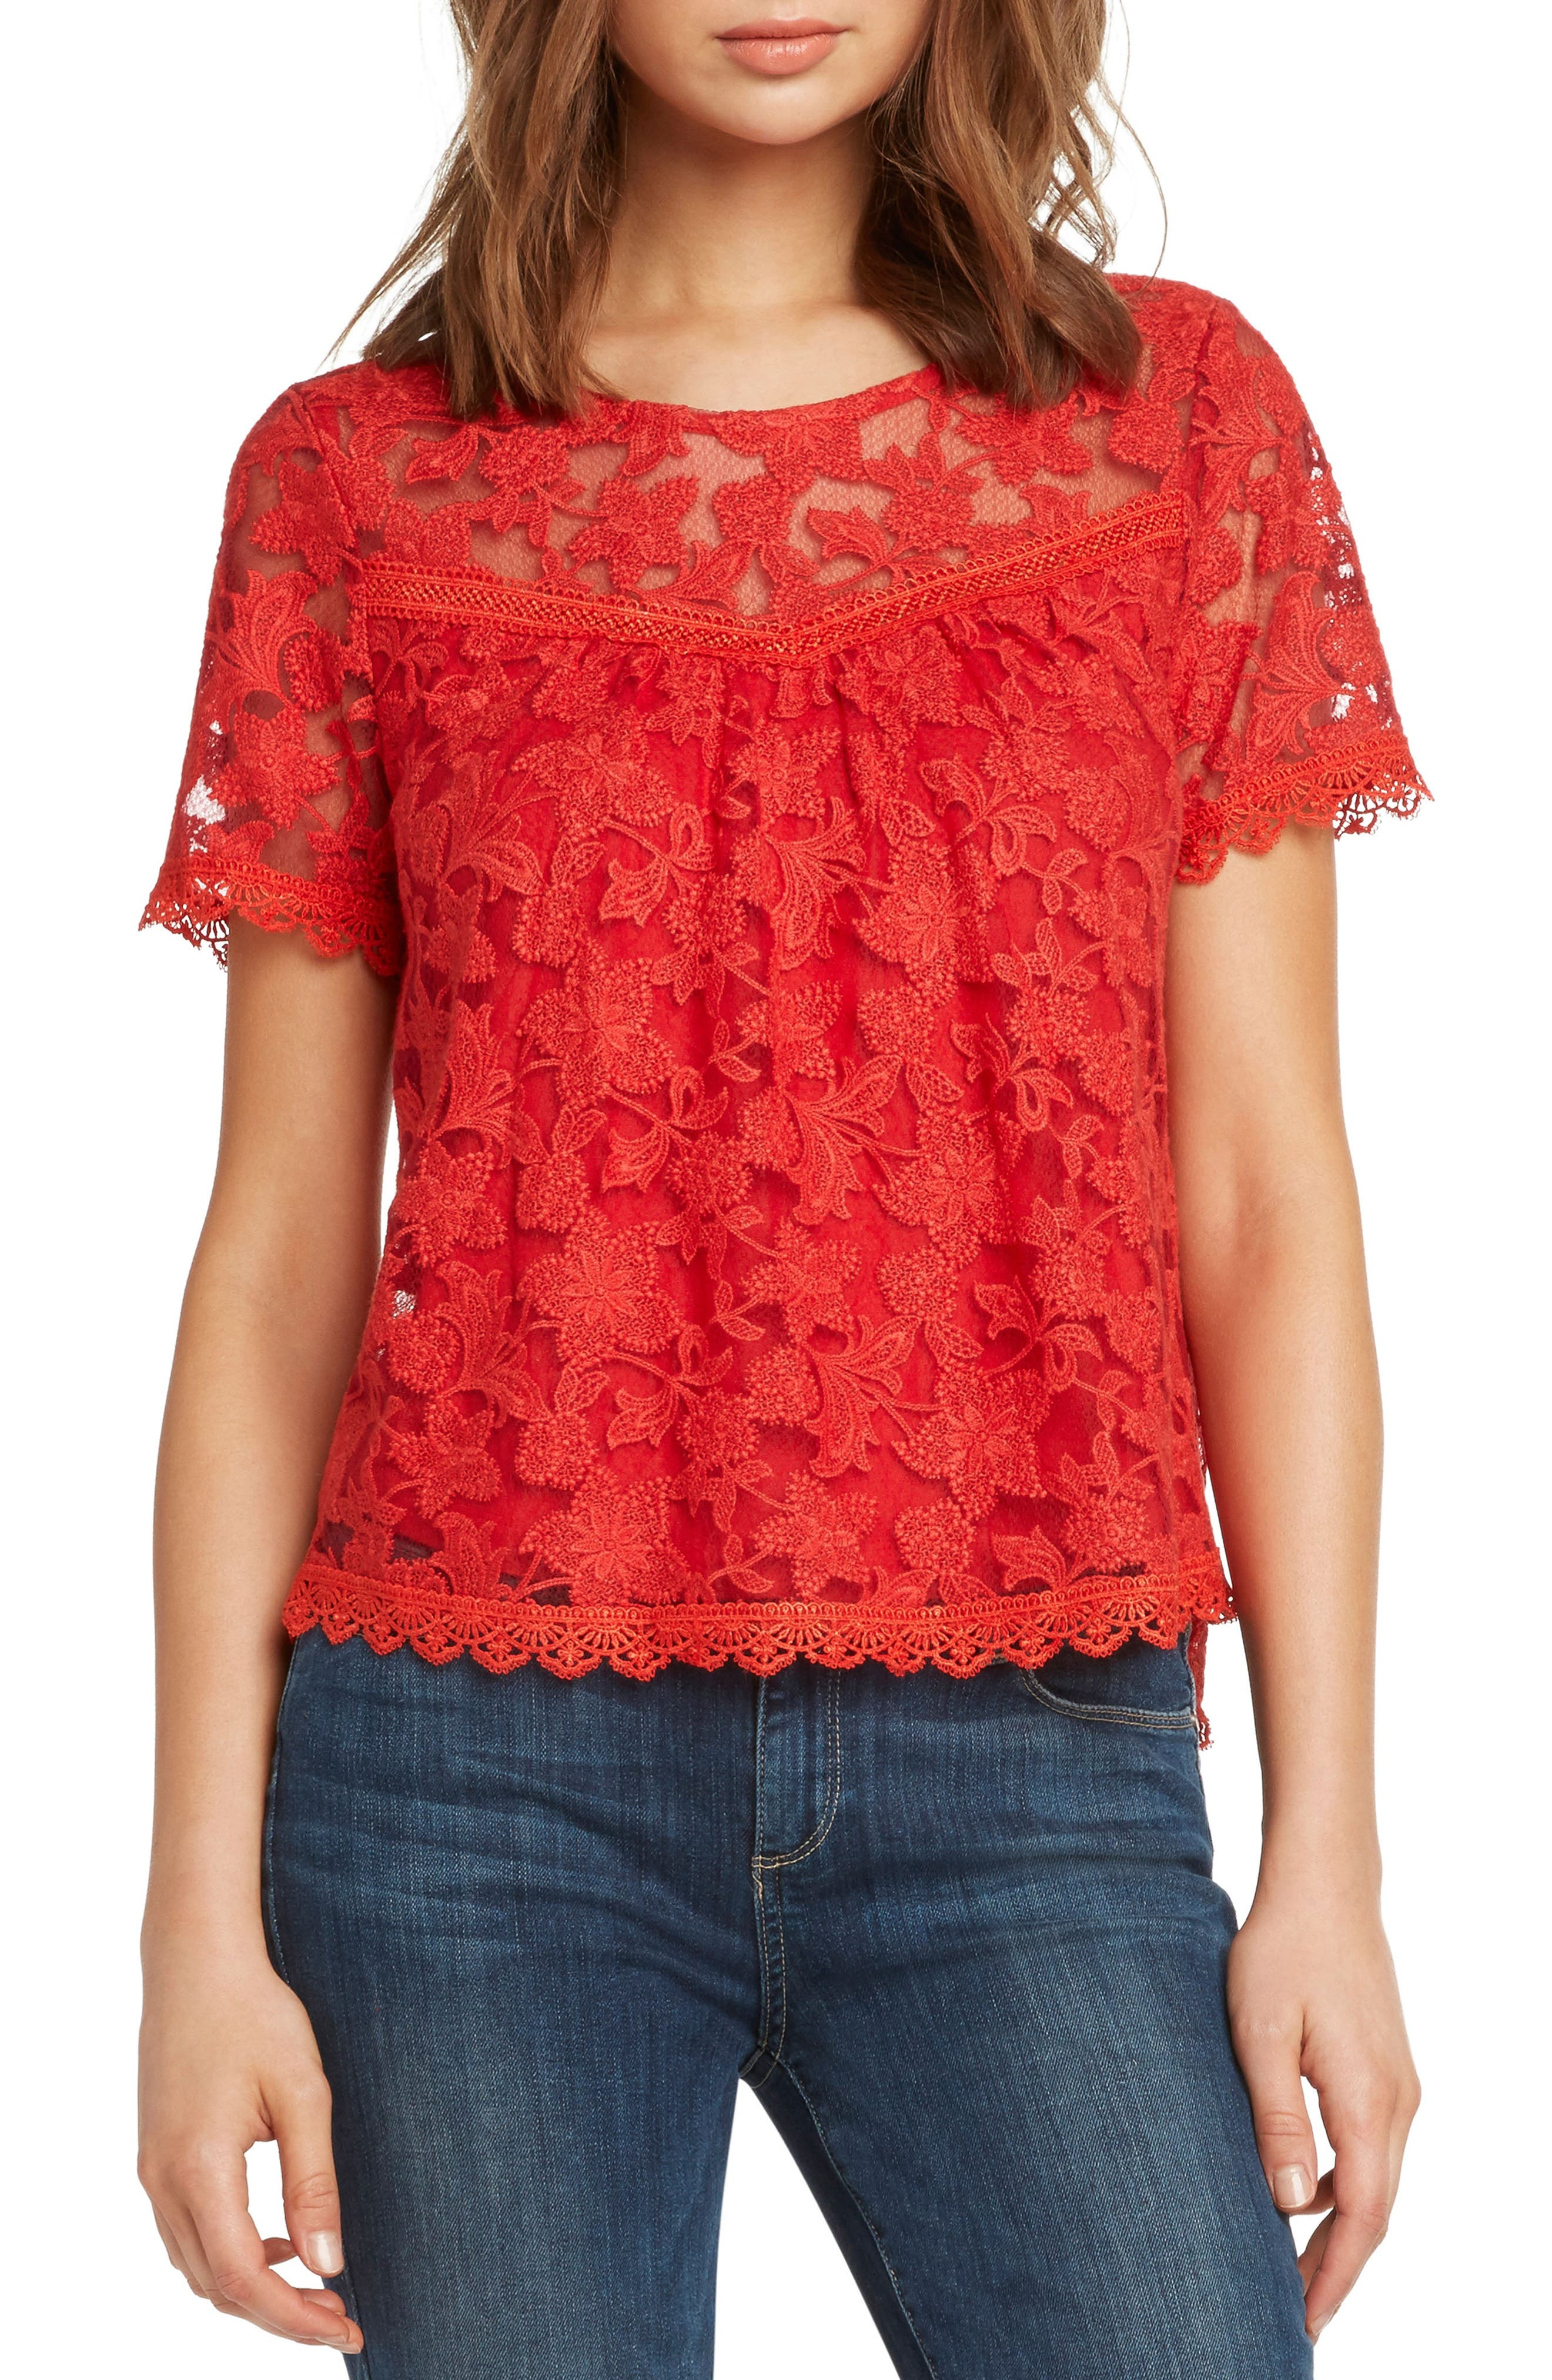 WILLOW & CLAY Inset Detail Lace Top, Main, color, 643